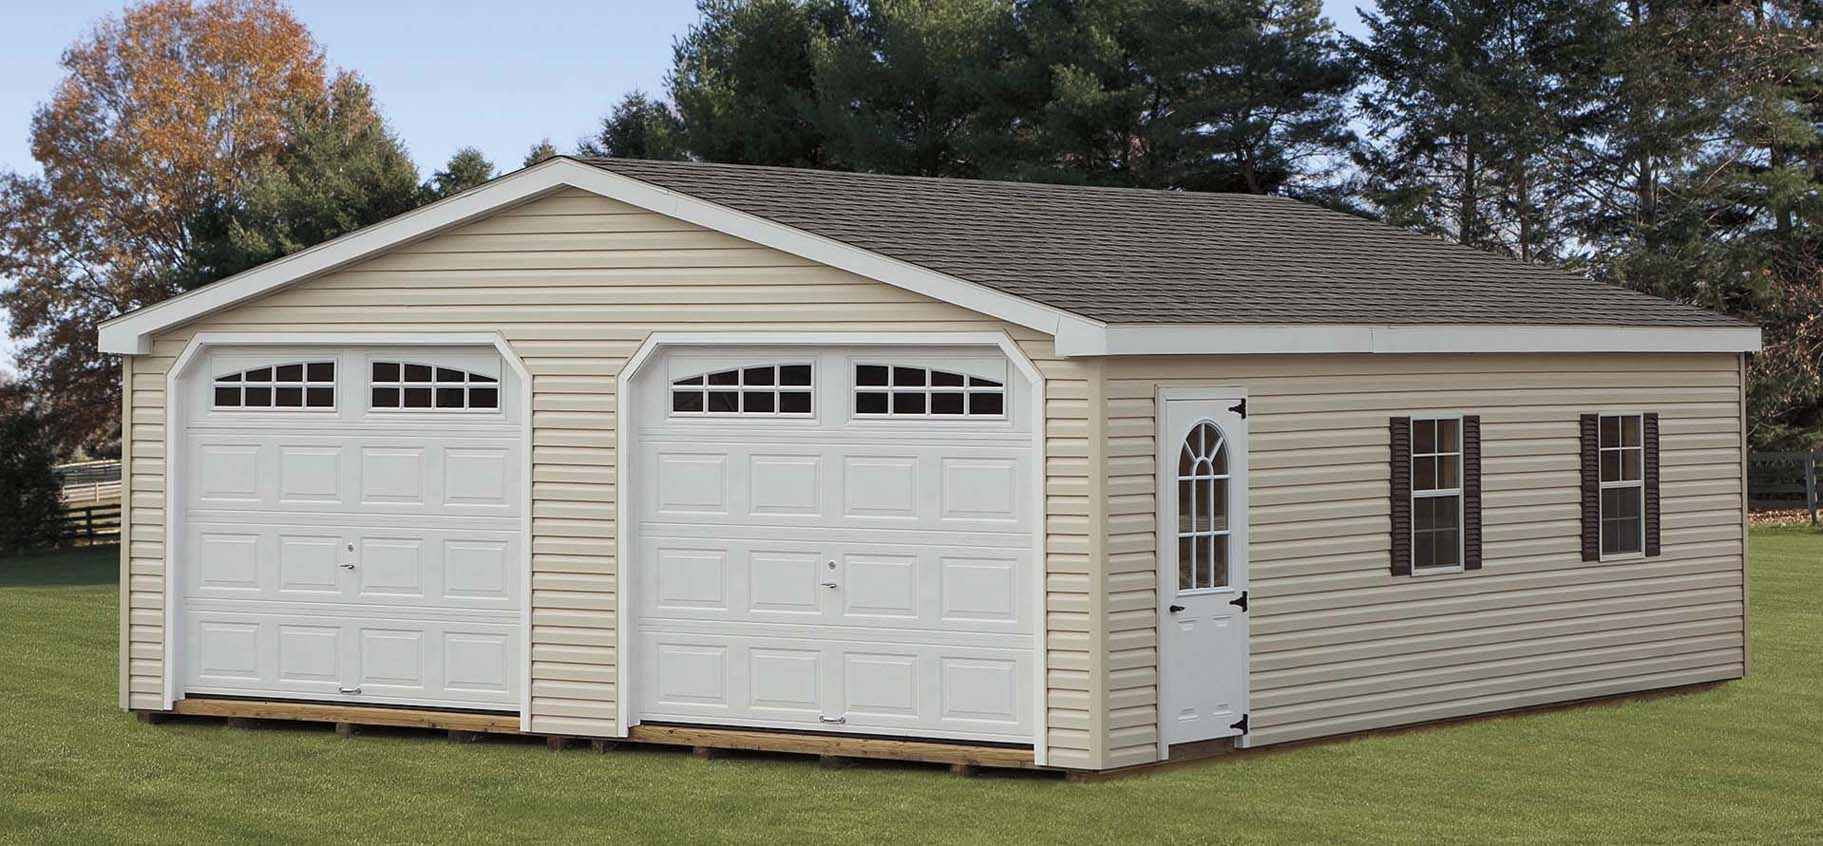 Sheds barns garages pine ridge barns for Garage bc automobile chateauroux